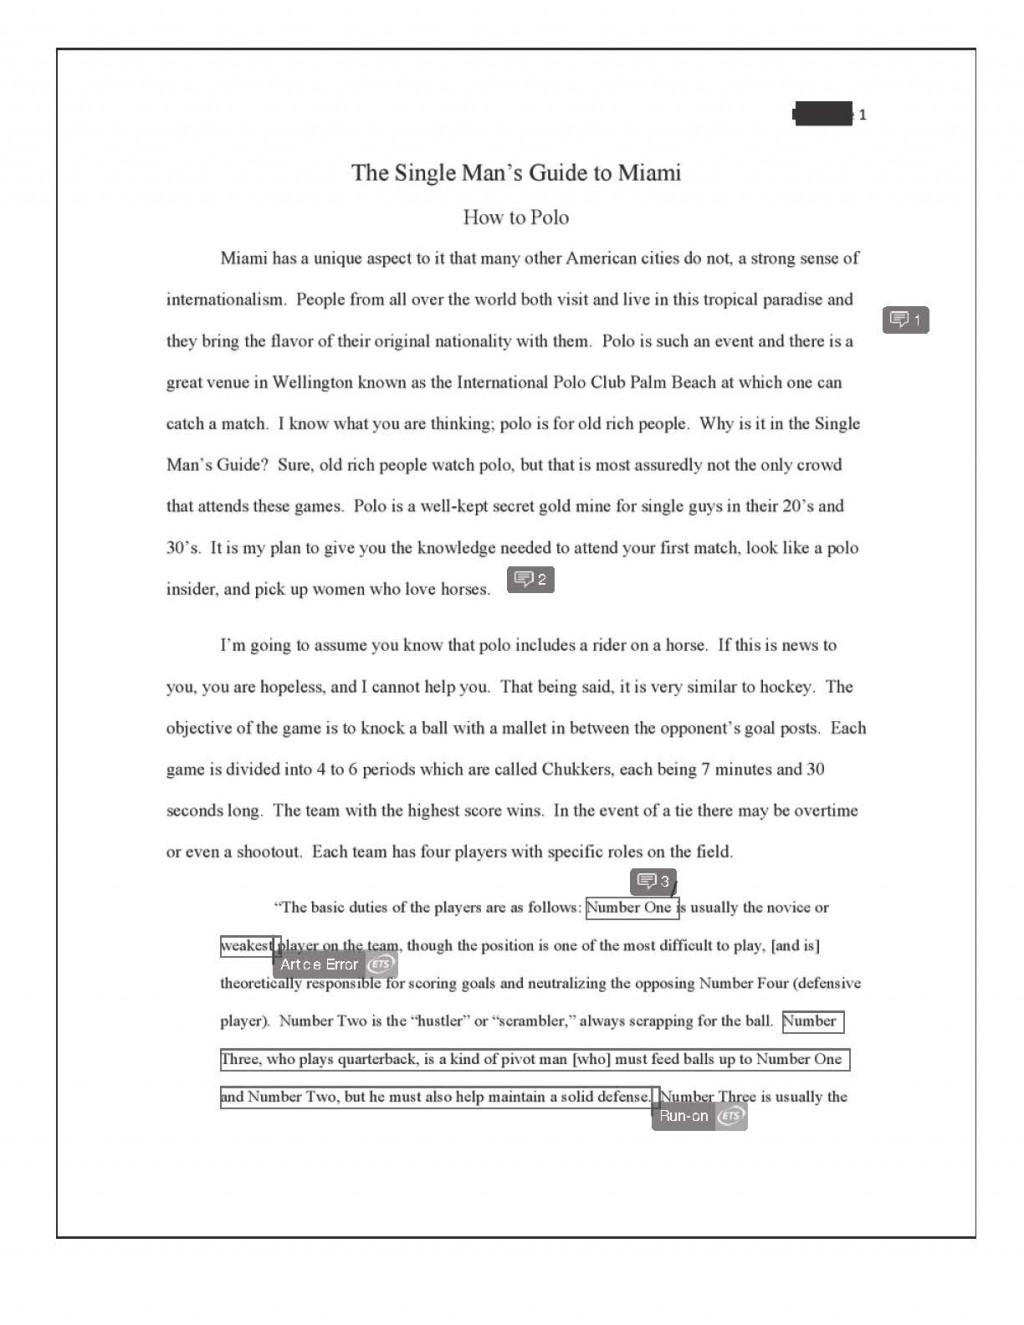 009 Essay Example Informative Format Final How To Polo Redacted Page 2 Unbelievable Pdf Speech Informative/explanatory Large